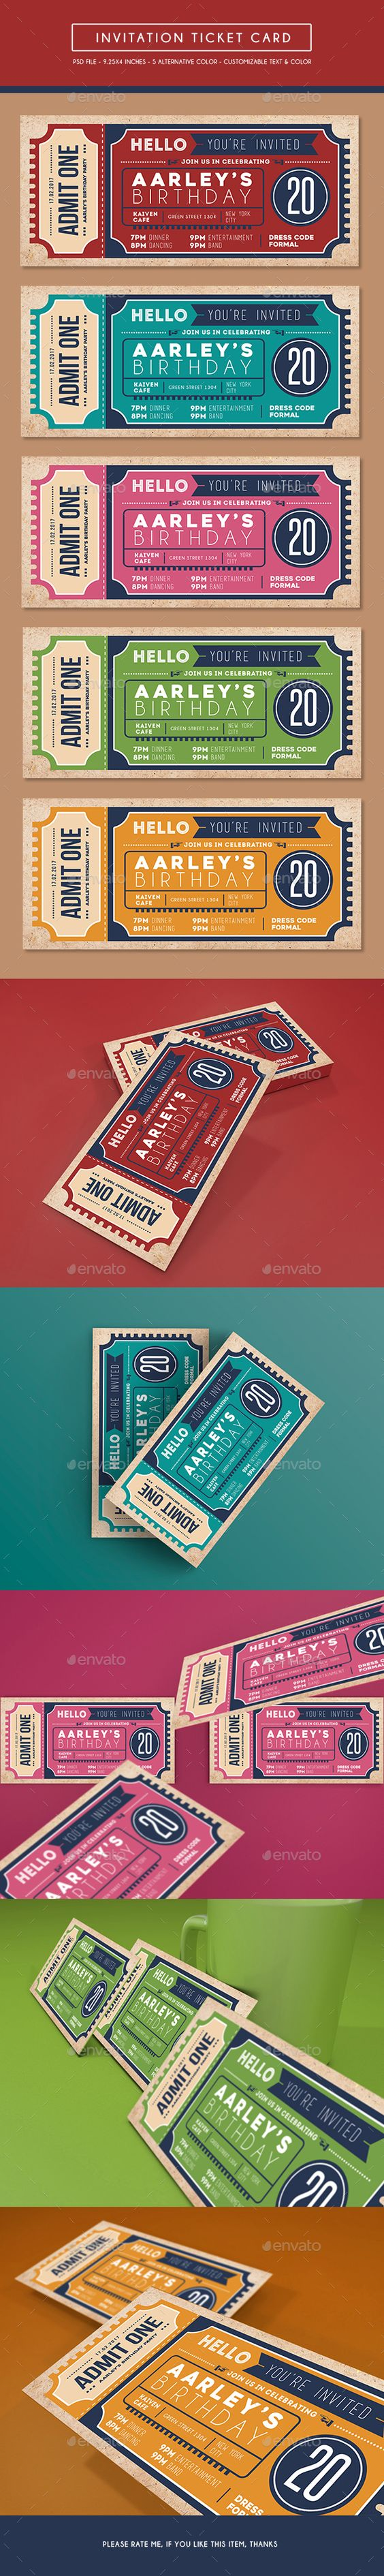 Concert Ticket Invitation Template Adorable Pind3Rrrr On Source Material  Pinterest  Typography .